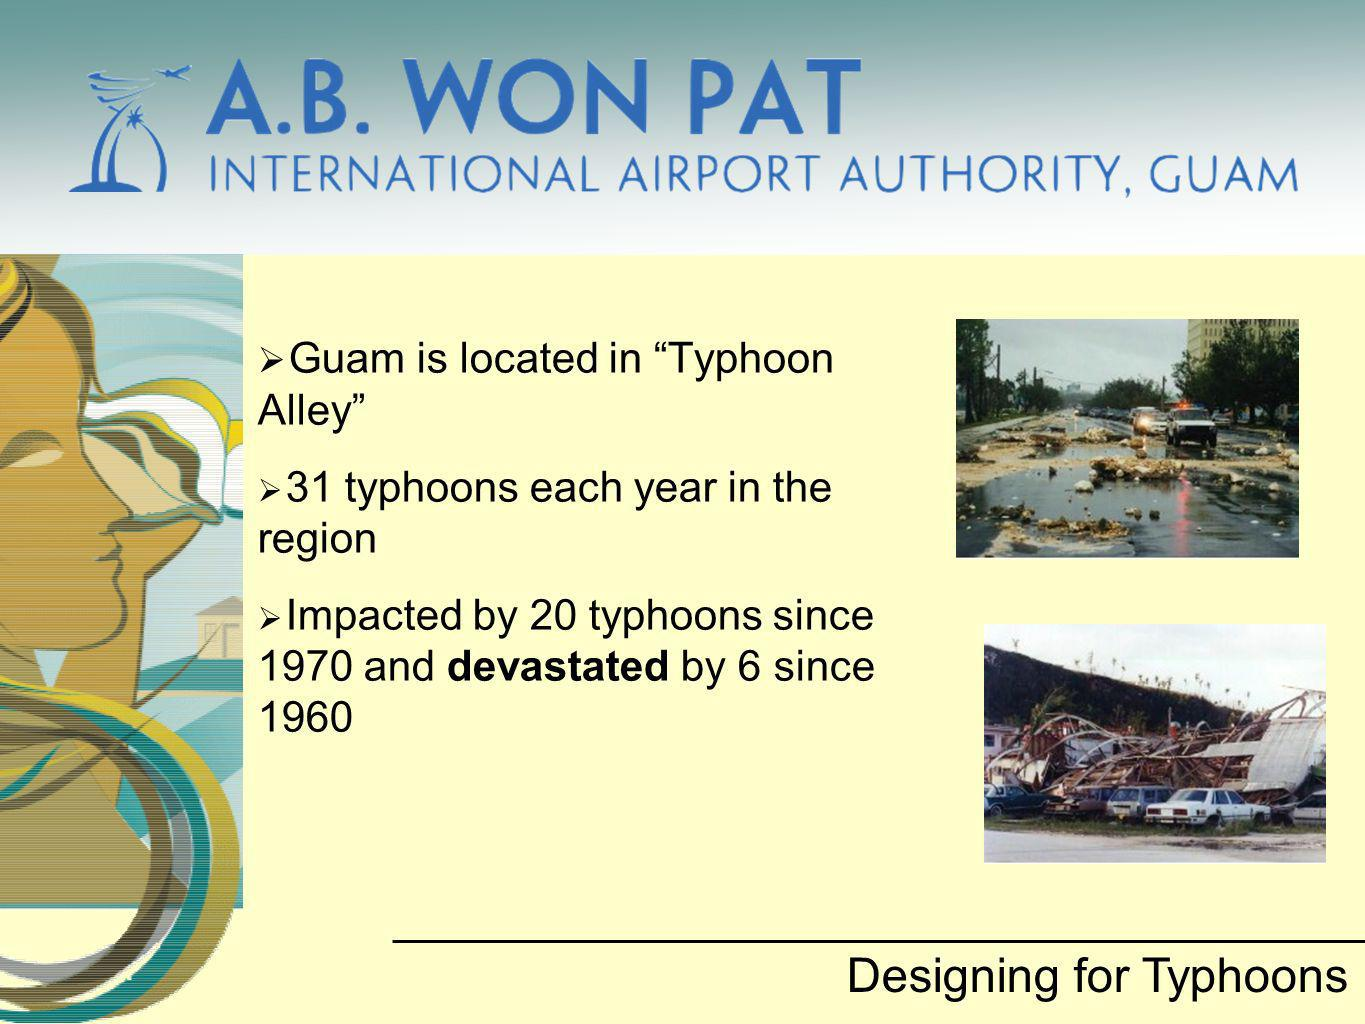 Guam is located in Typhoon Alley